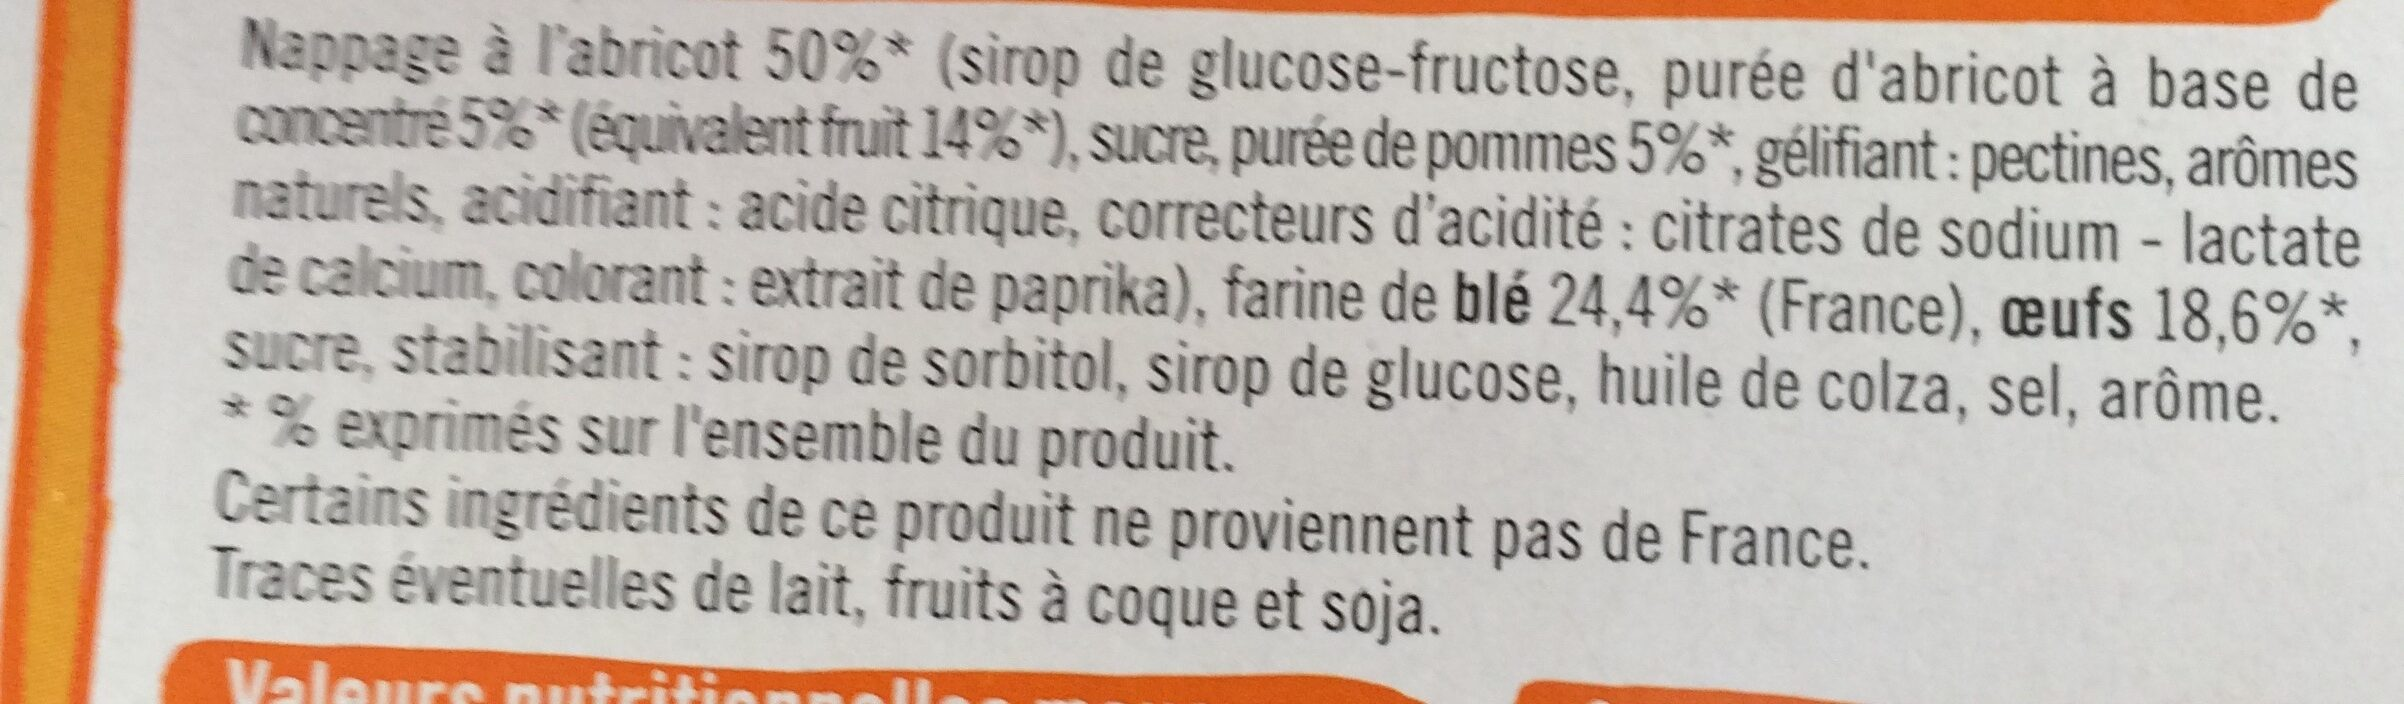 Barquettes Abricot - Ingredients - fr